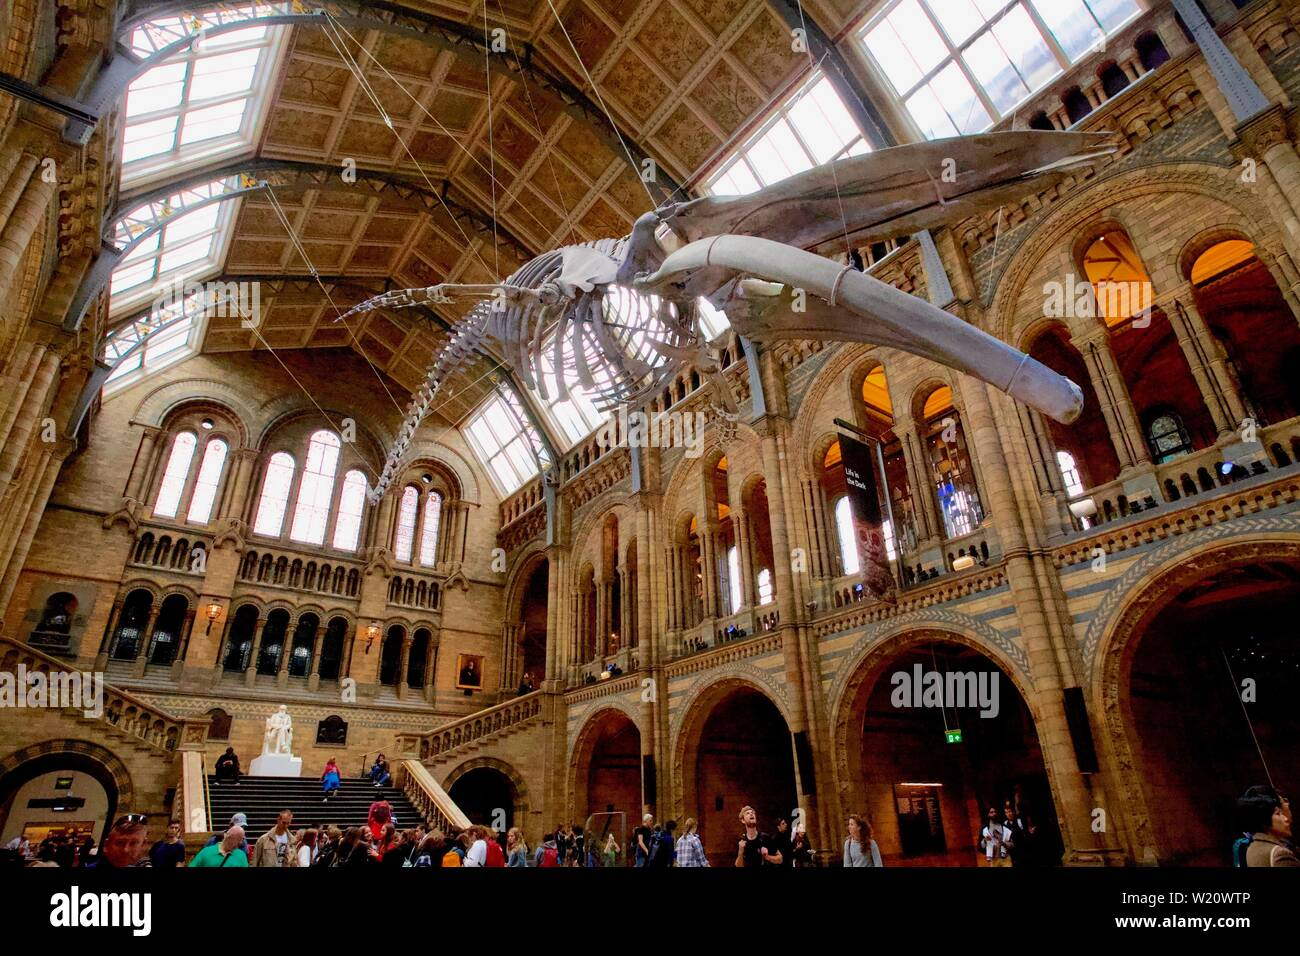 Natural History Museum, Cromwell Road, South Kensington, Royal Borough of Kensington and Chelsea - Blue Whale skeleton - Stock Image